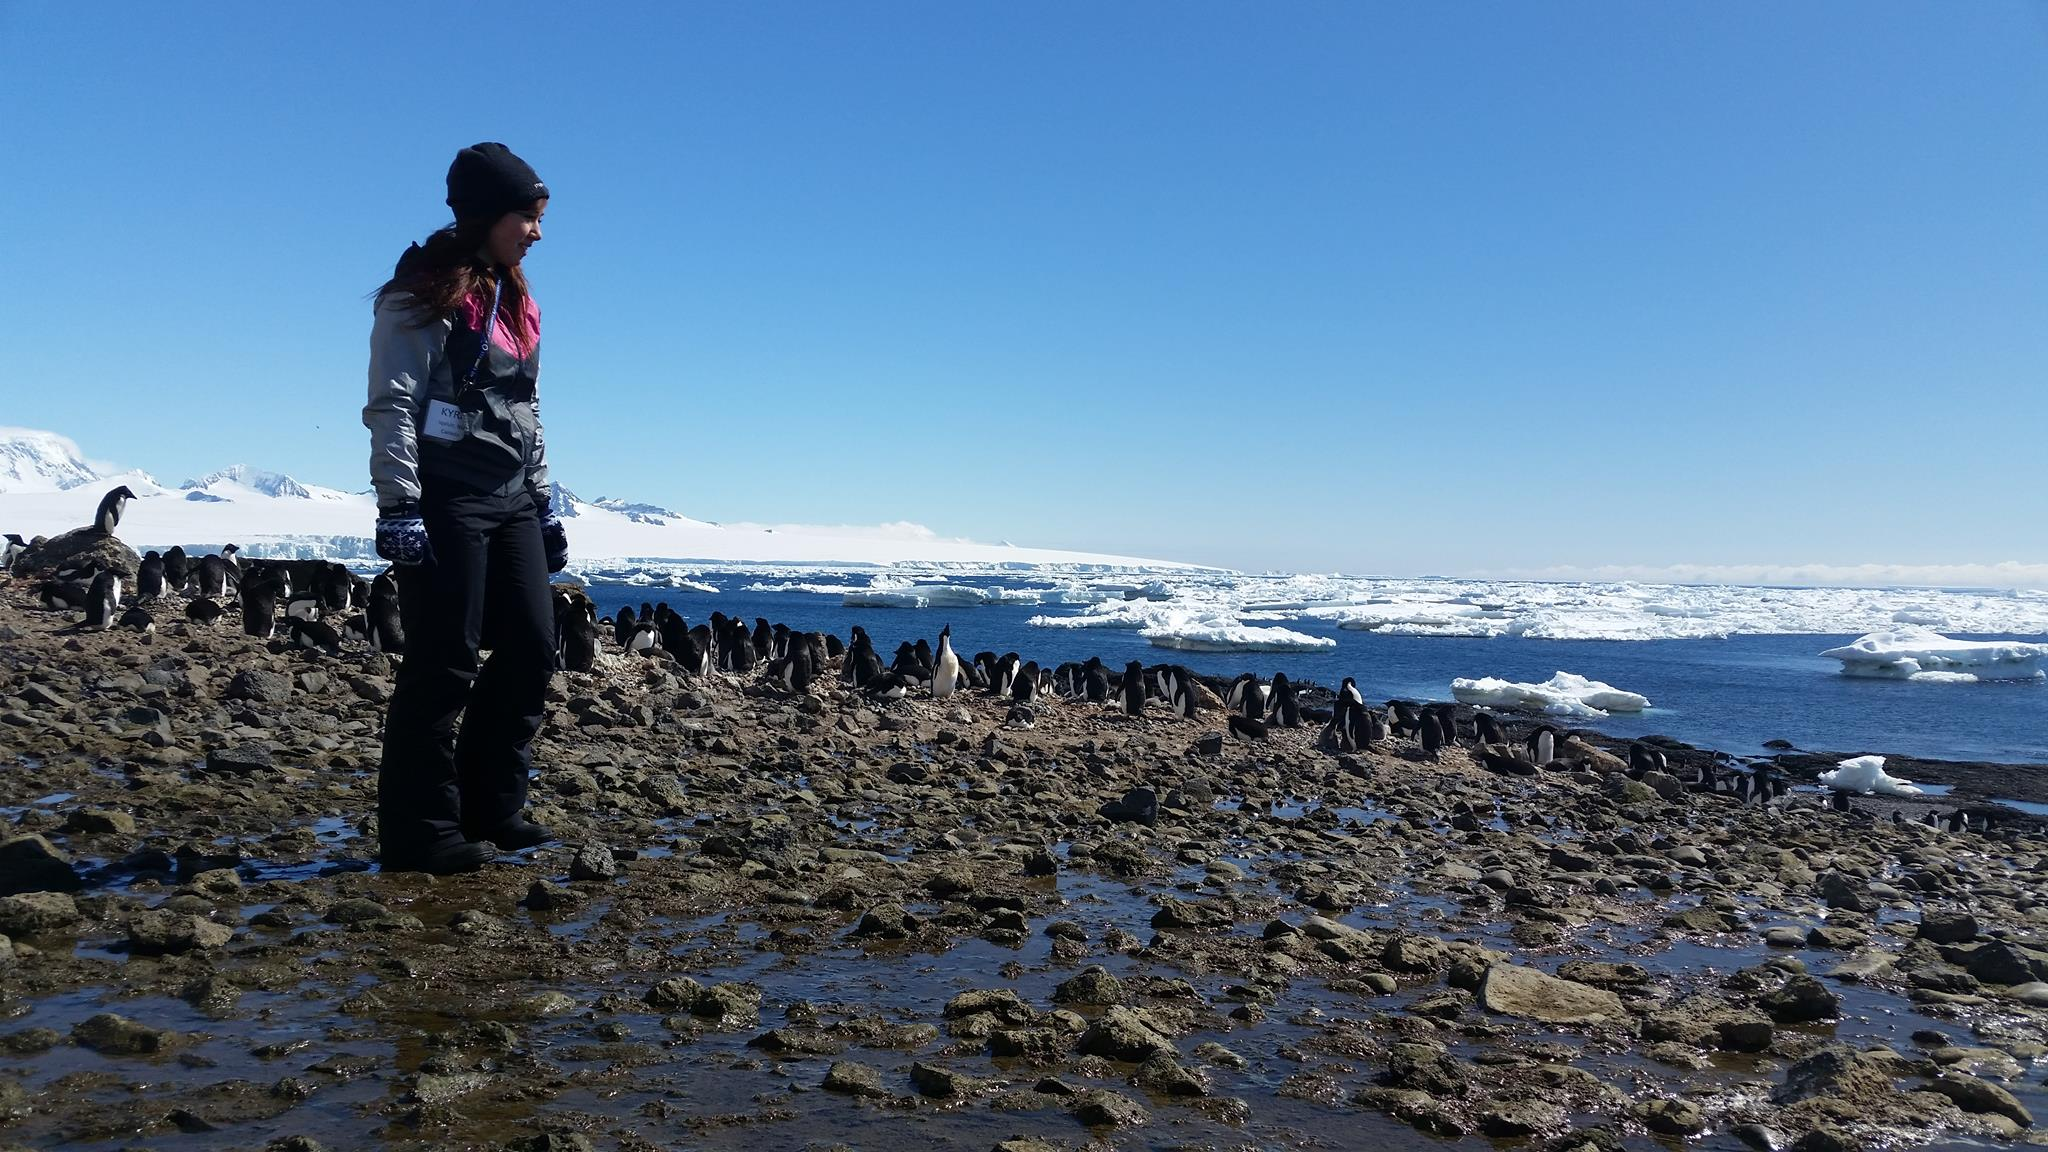 A photo of my on Deception Island - one of my favourite places in the world.